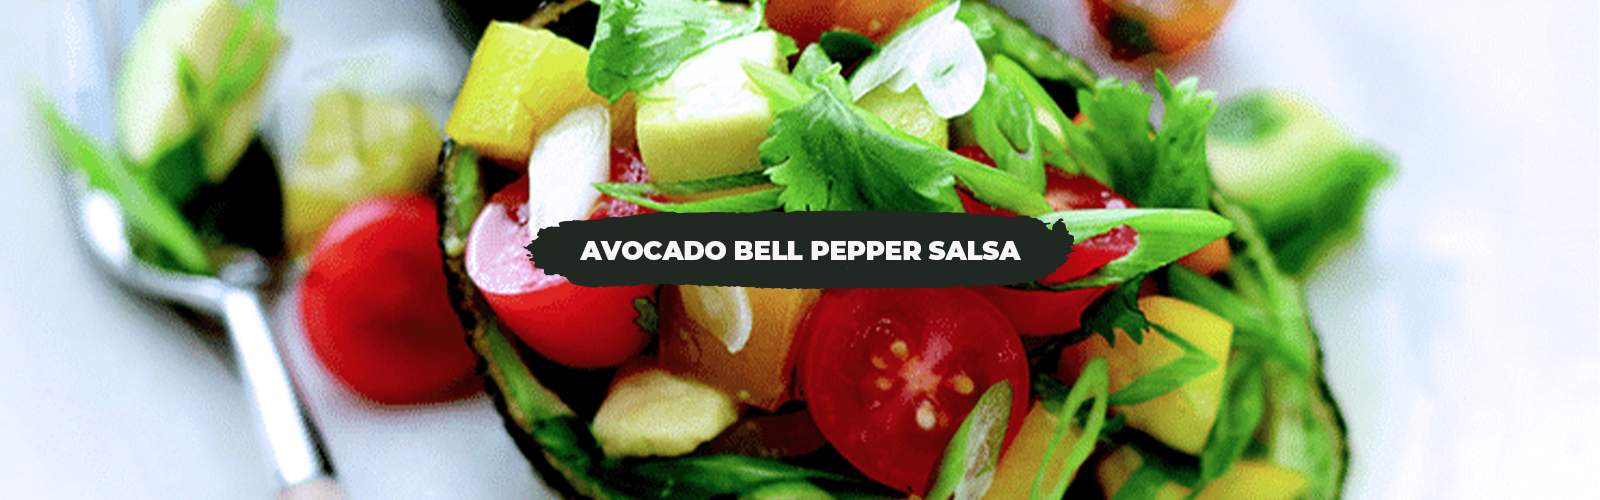 Avocado Bell Pepper Salsa